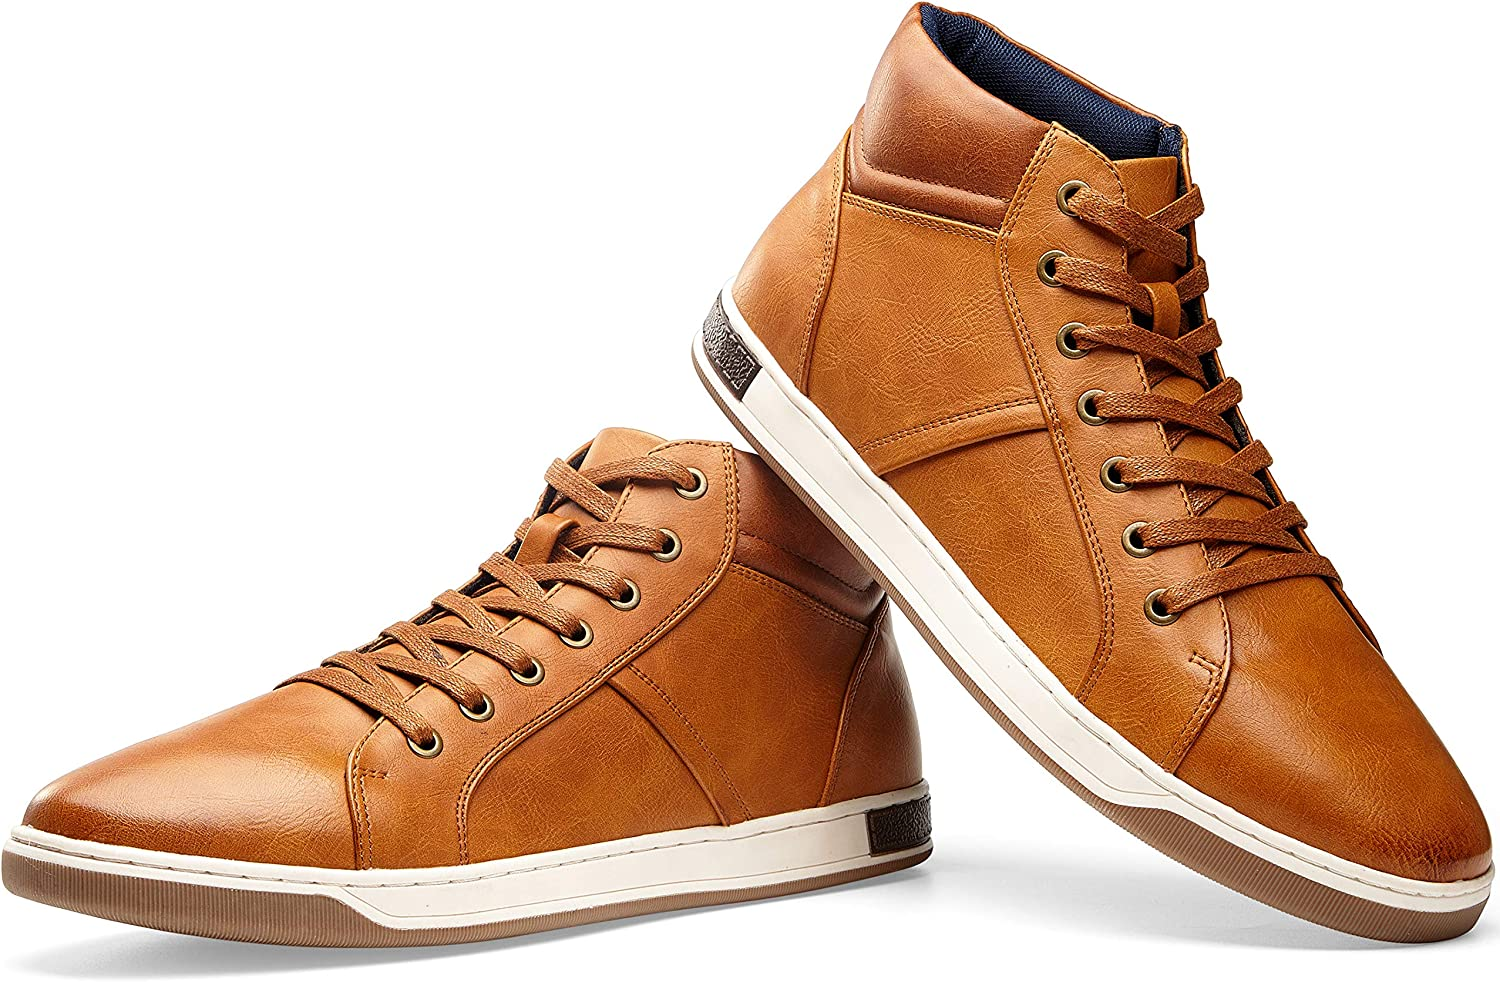 | JOUSEN Men's Casual Shoes High Top Fashion Sneaker Lightweight Men Boots Shoes | Fashion Sneakers